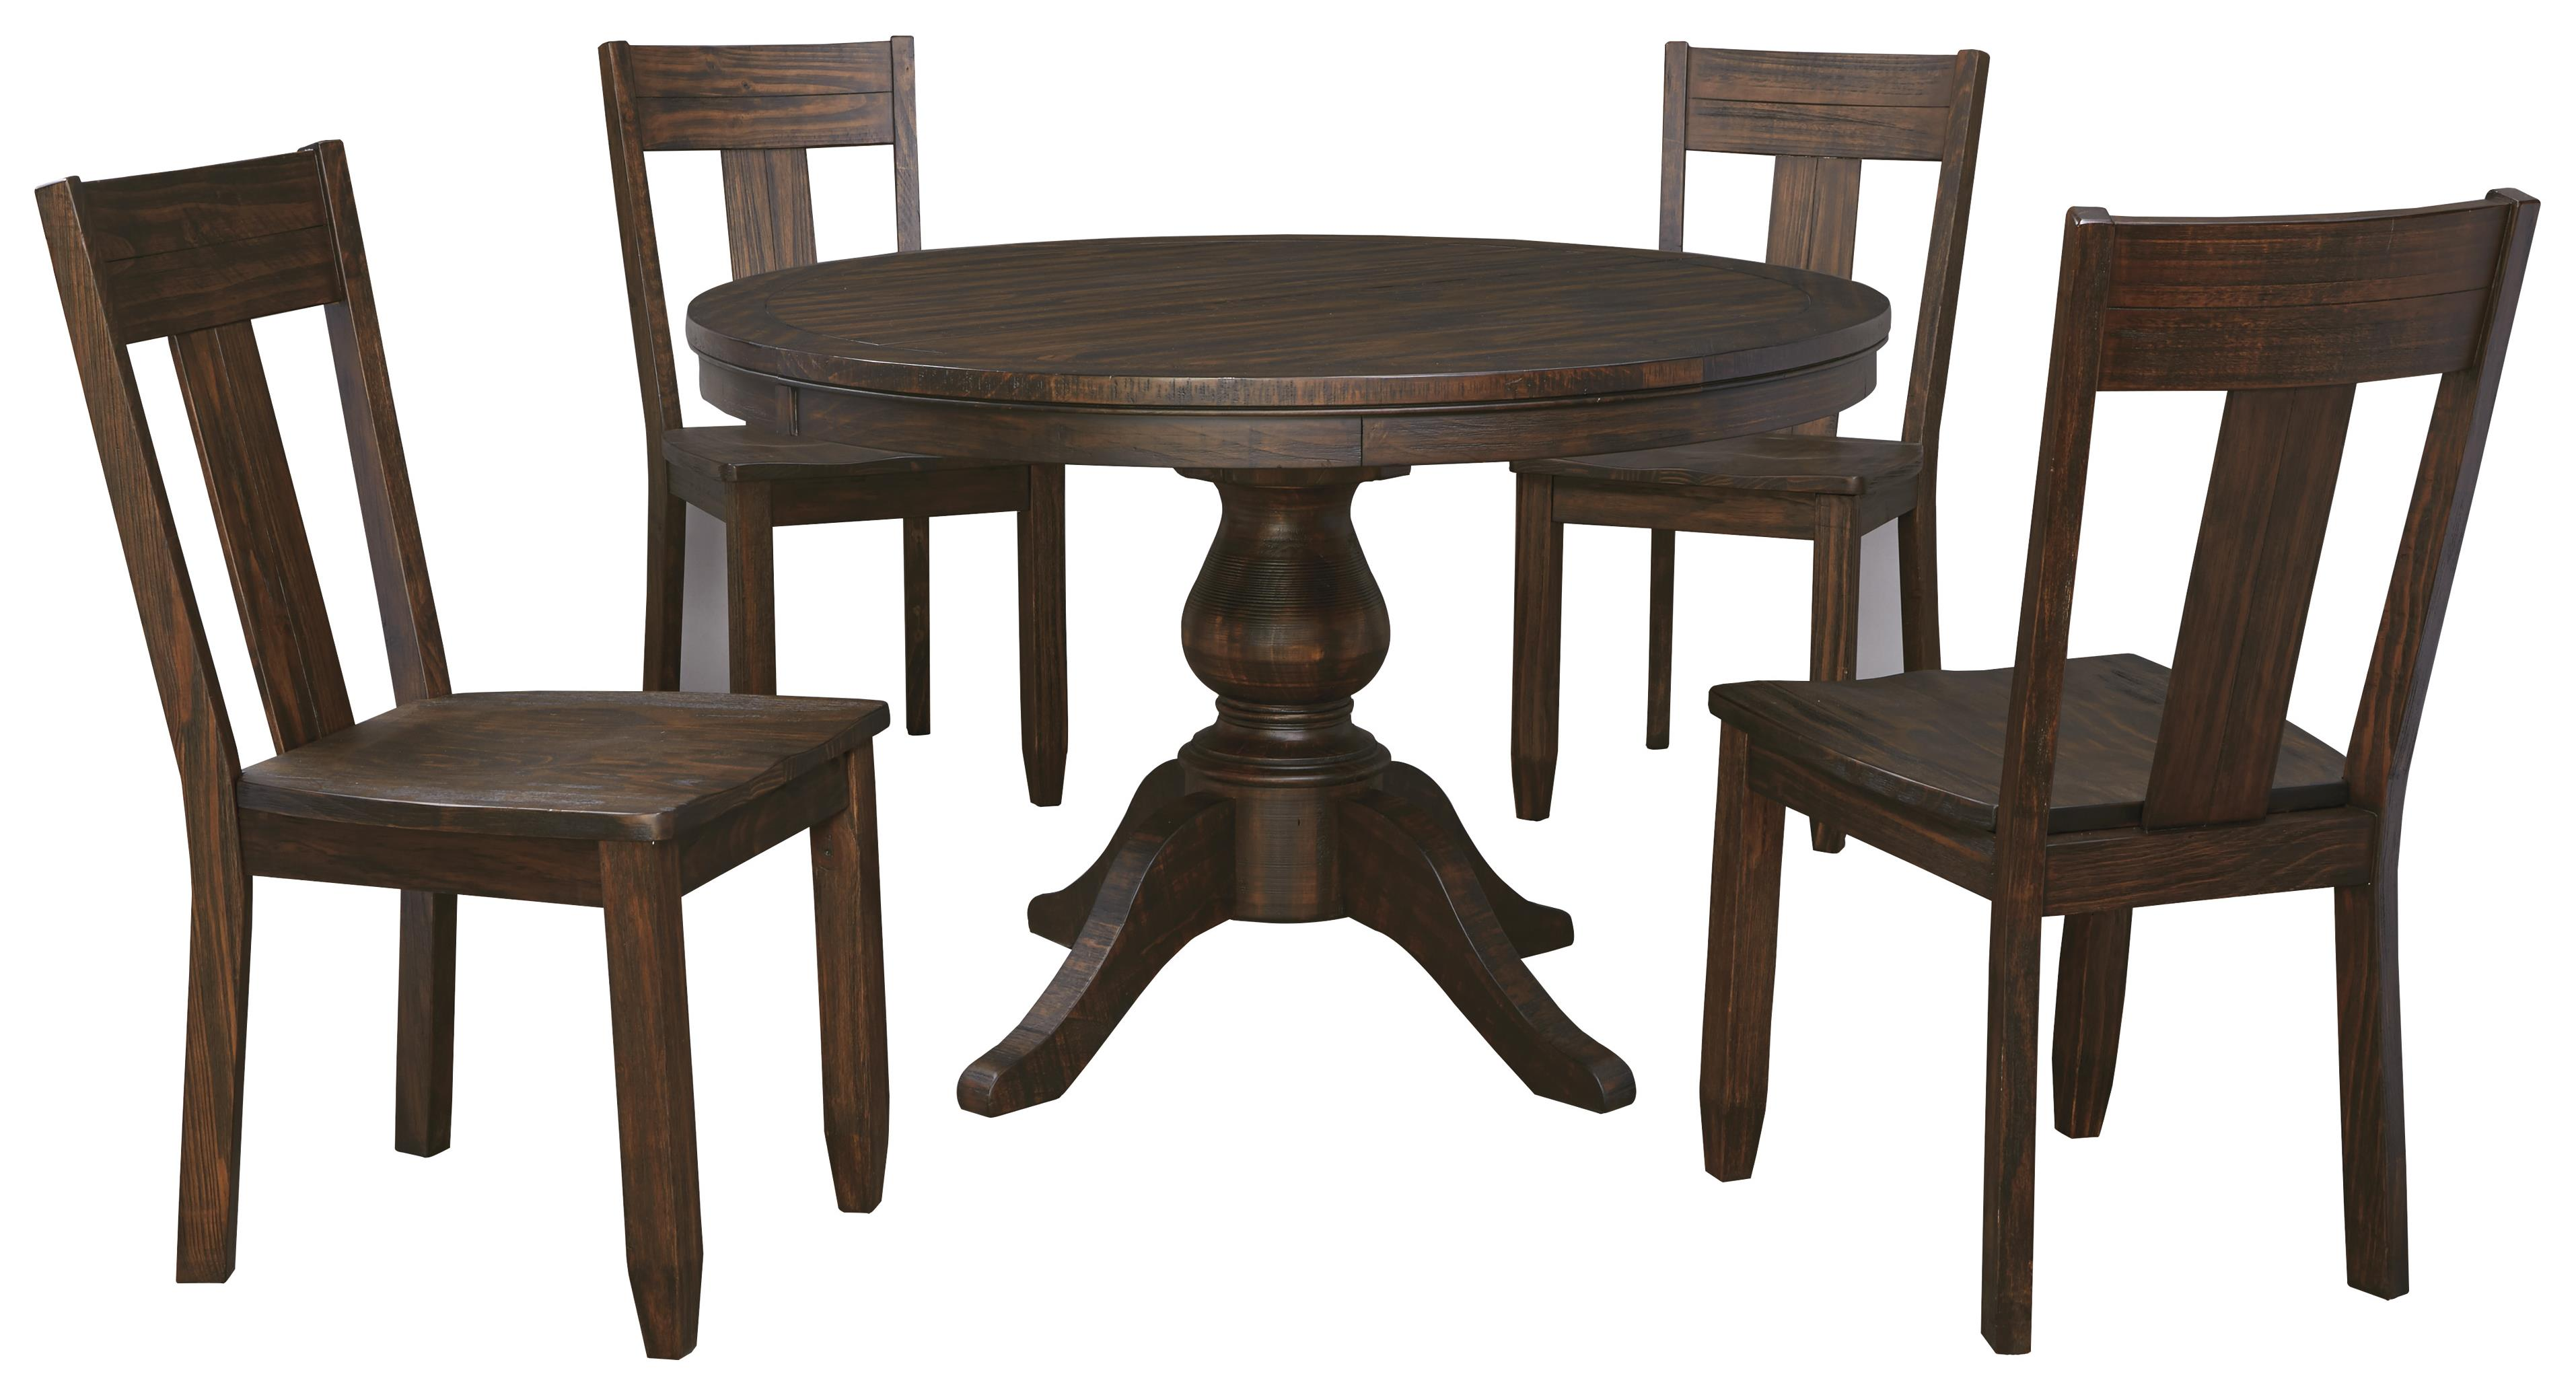 Wooden Dining Table Set ~ Piece round dining table set with wood seat side chairs